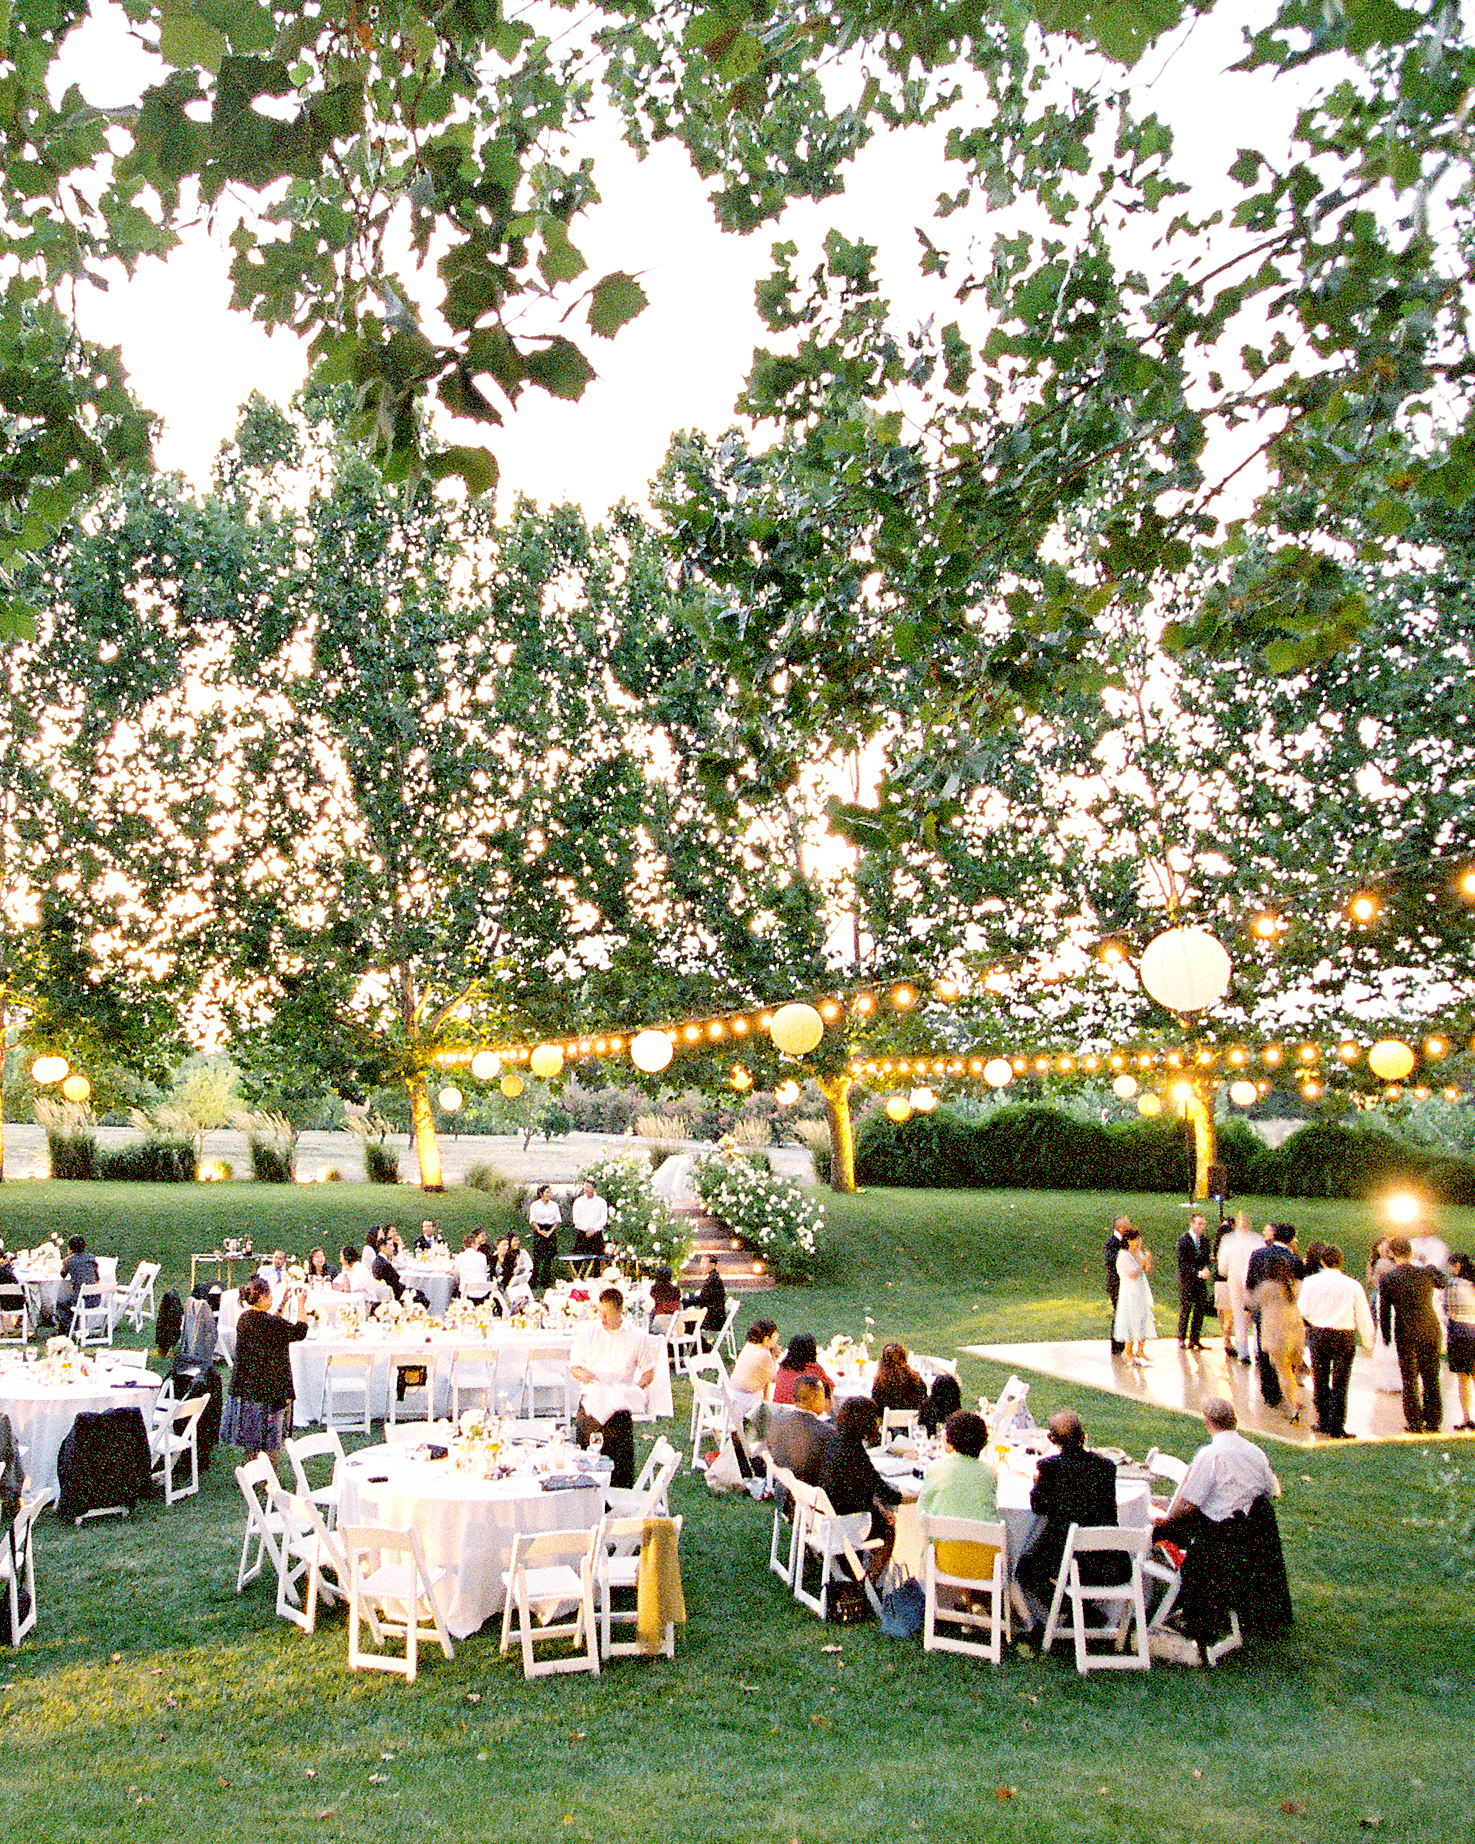 Pros and Cons of a Country Club Wedding